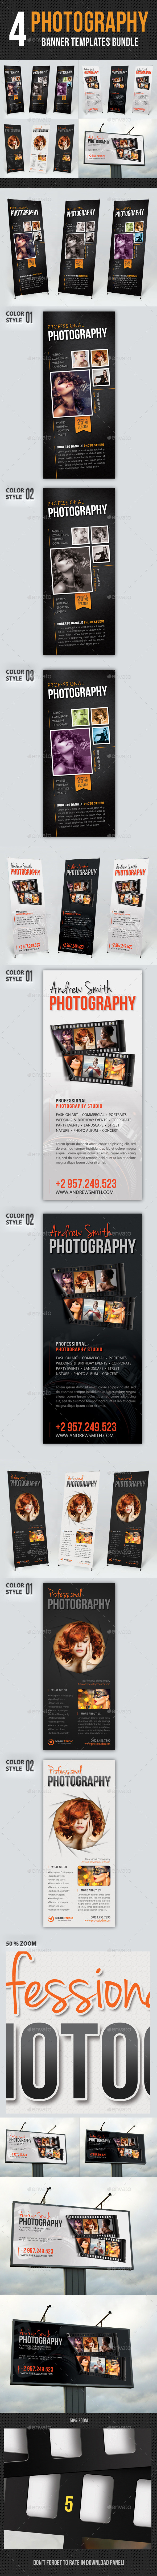 GraphicRiver 4 in 1 Photography Multipurpose Banner Bundle 11767117